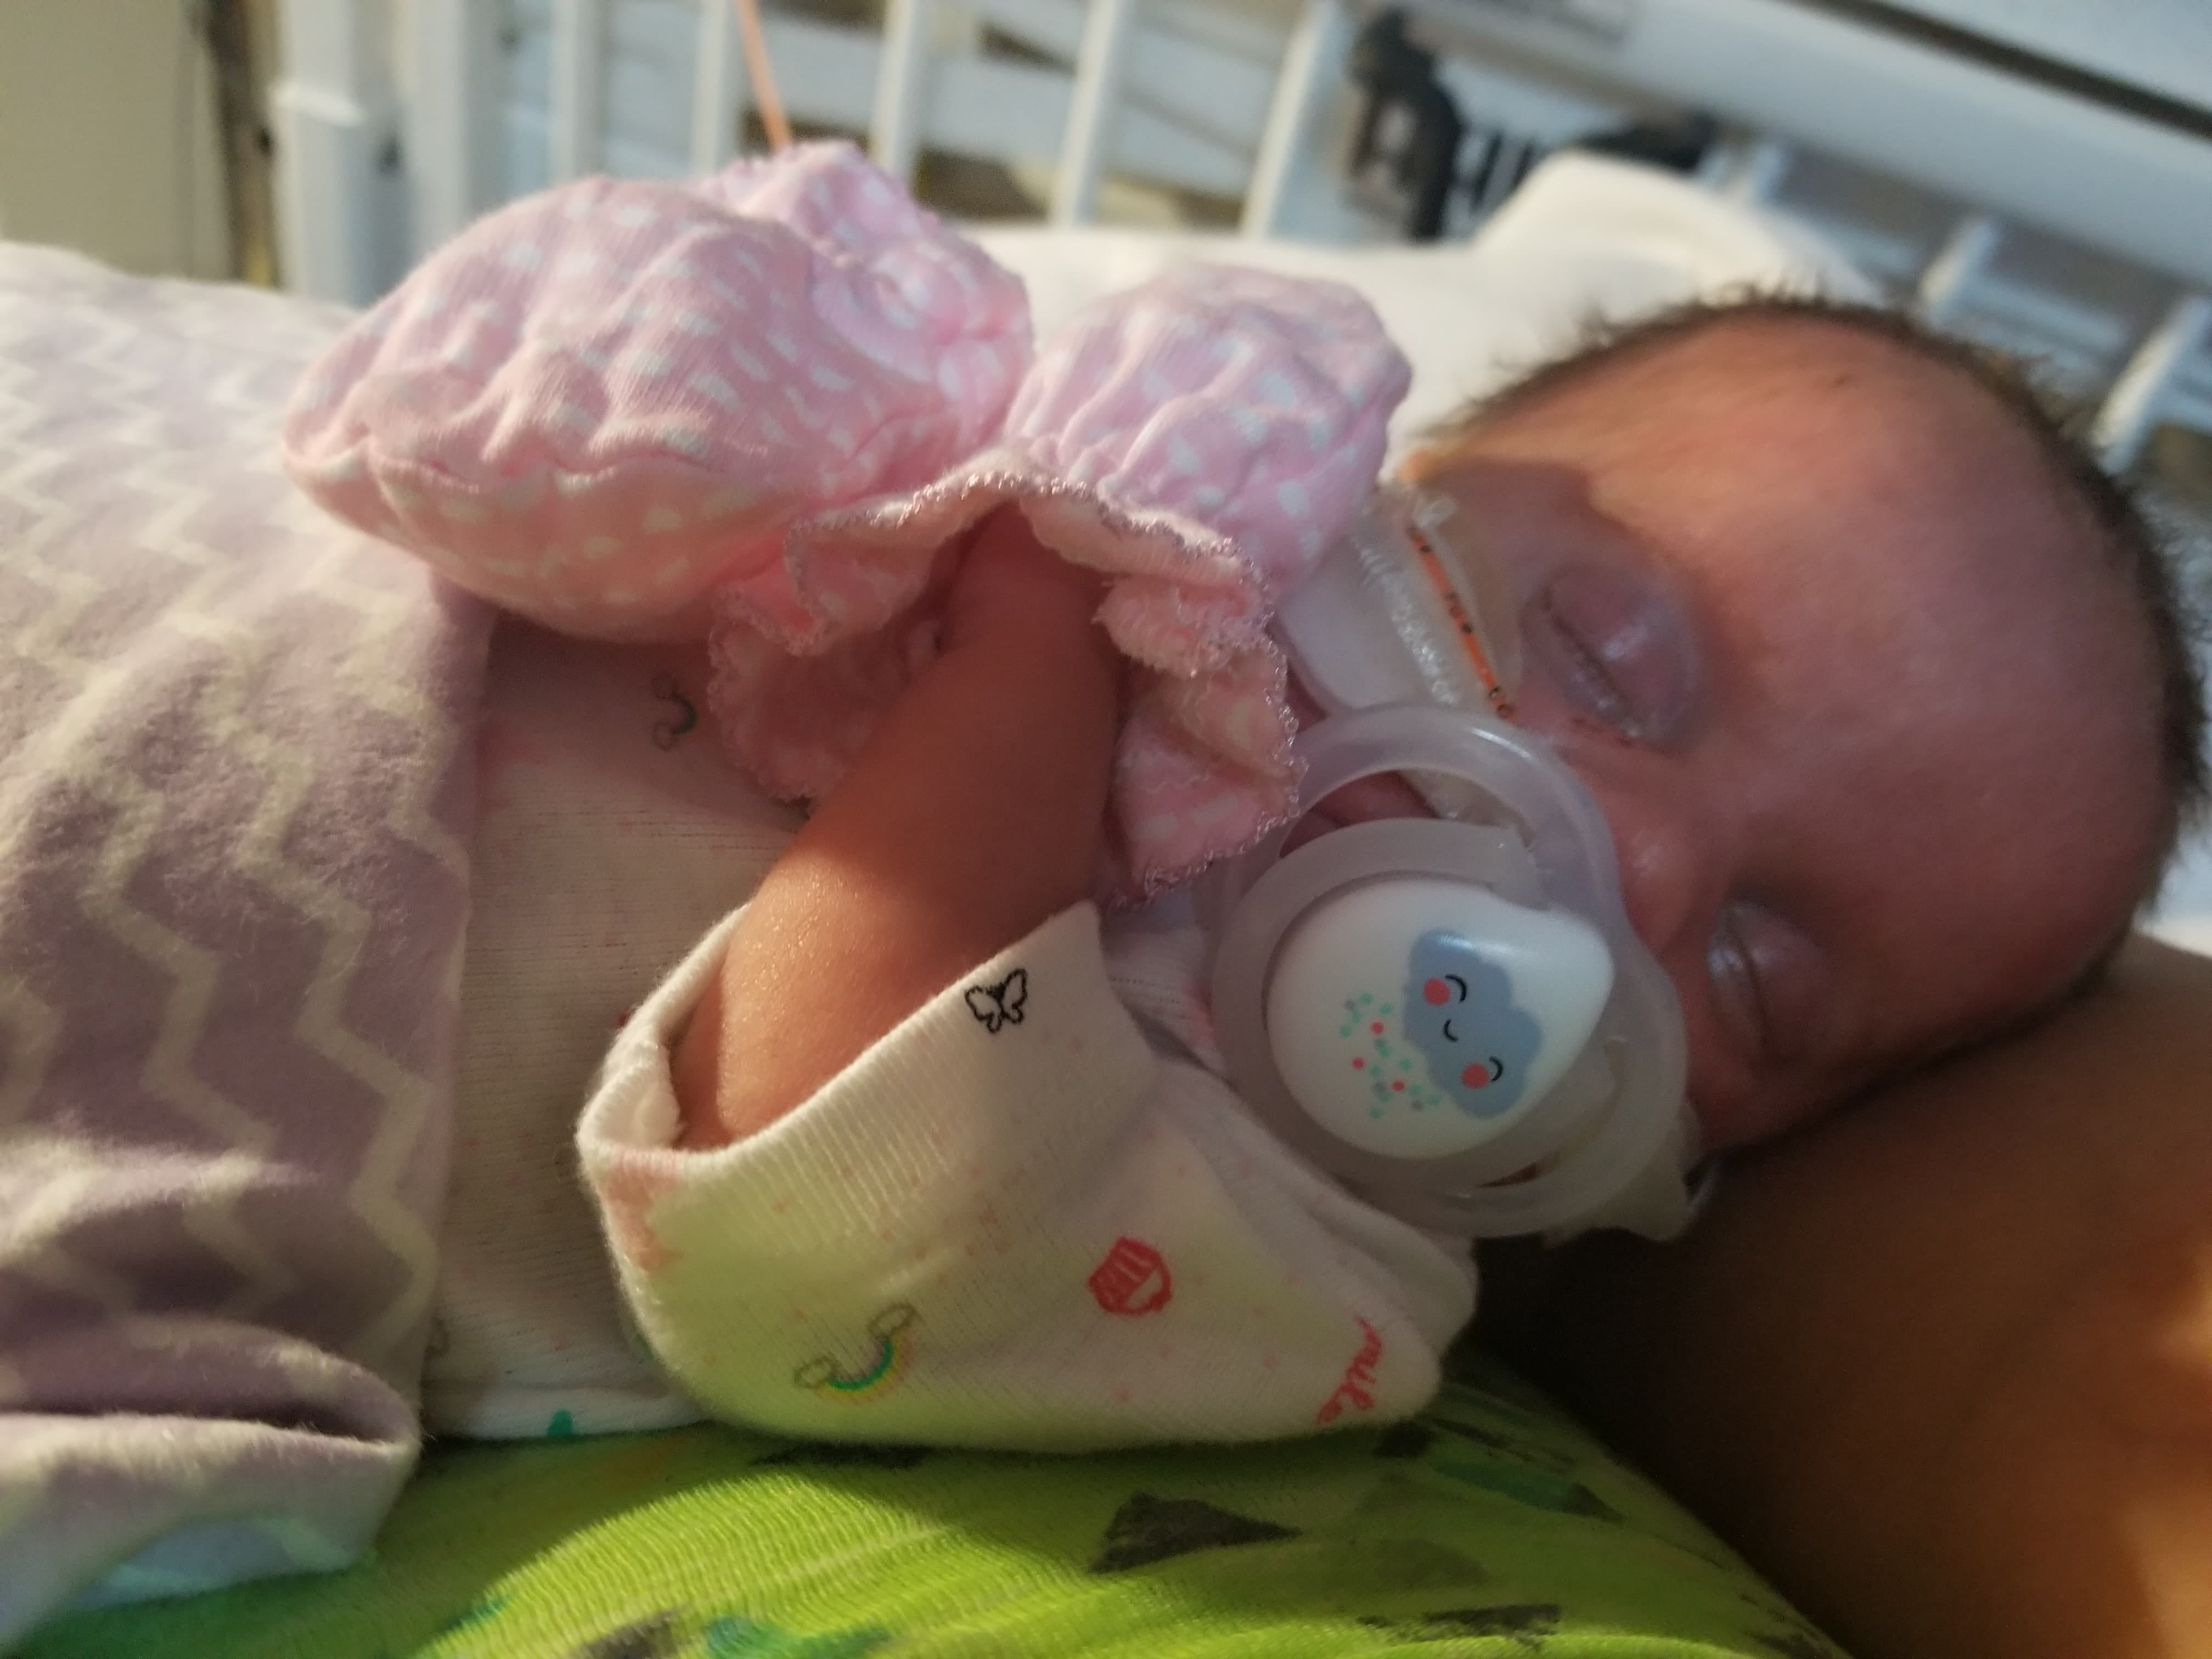 Staunton's Raven Diana Ivy Pritt was born on Aug. 9, 2018 at Augusta Medical Center. Here she is in her new mittens at University of Virginia Health System University Hospital NICU unit awaiting transfer to Children's Hospital of Philadelphia. Raven was born with the rare genetic disease Generalized Arterial Calcification of Infancy (GACI), which affects 1 in 391,000 babies.